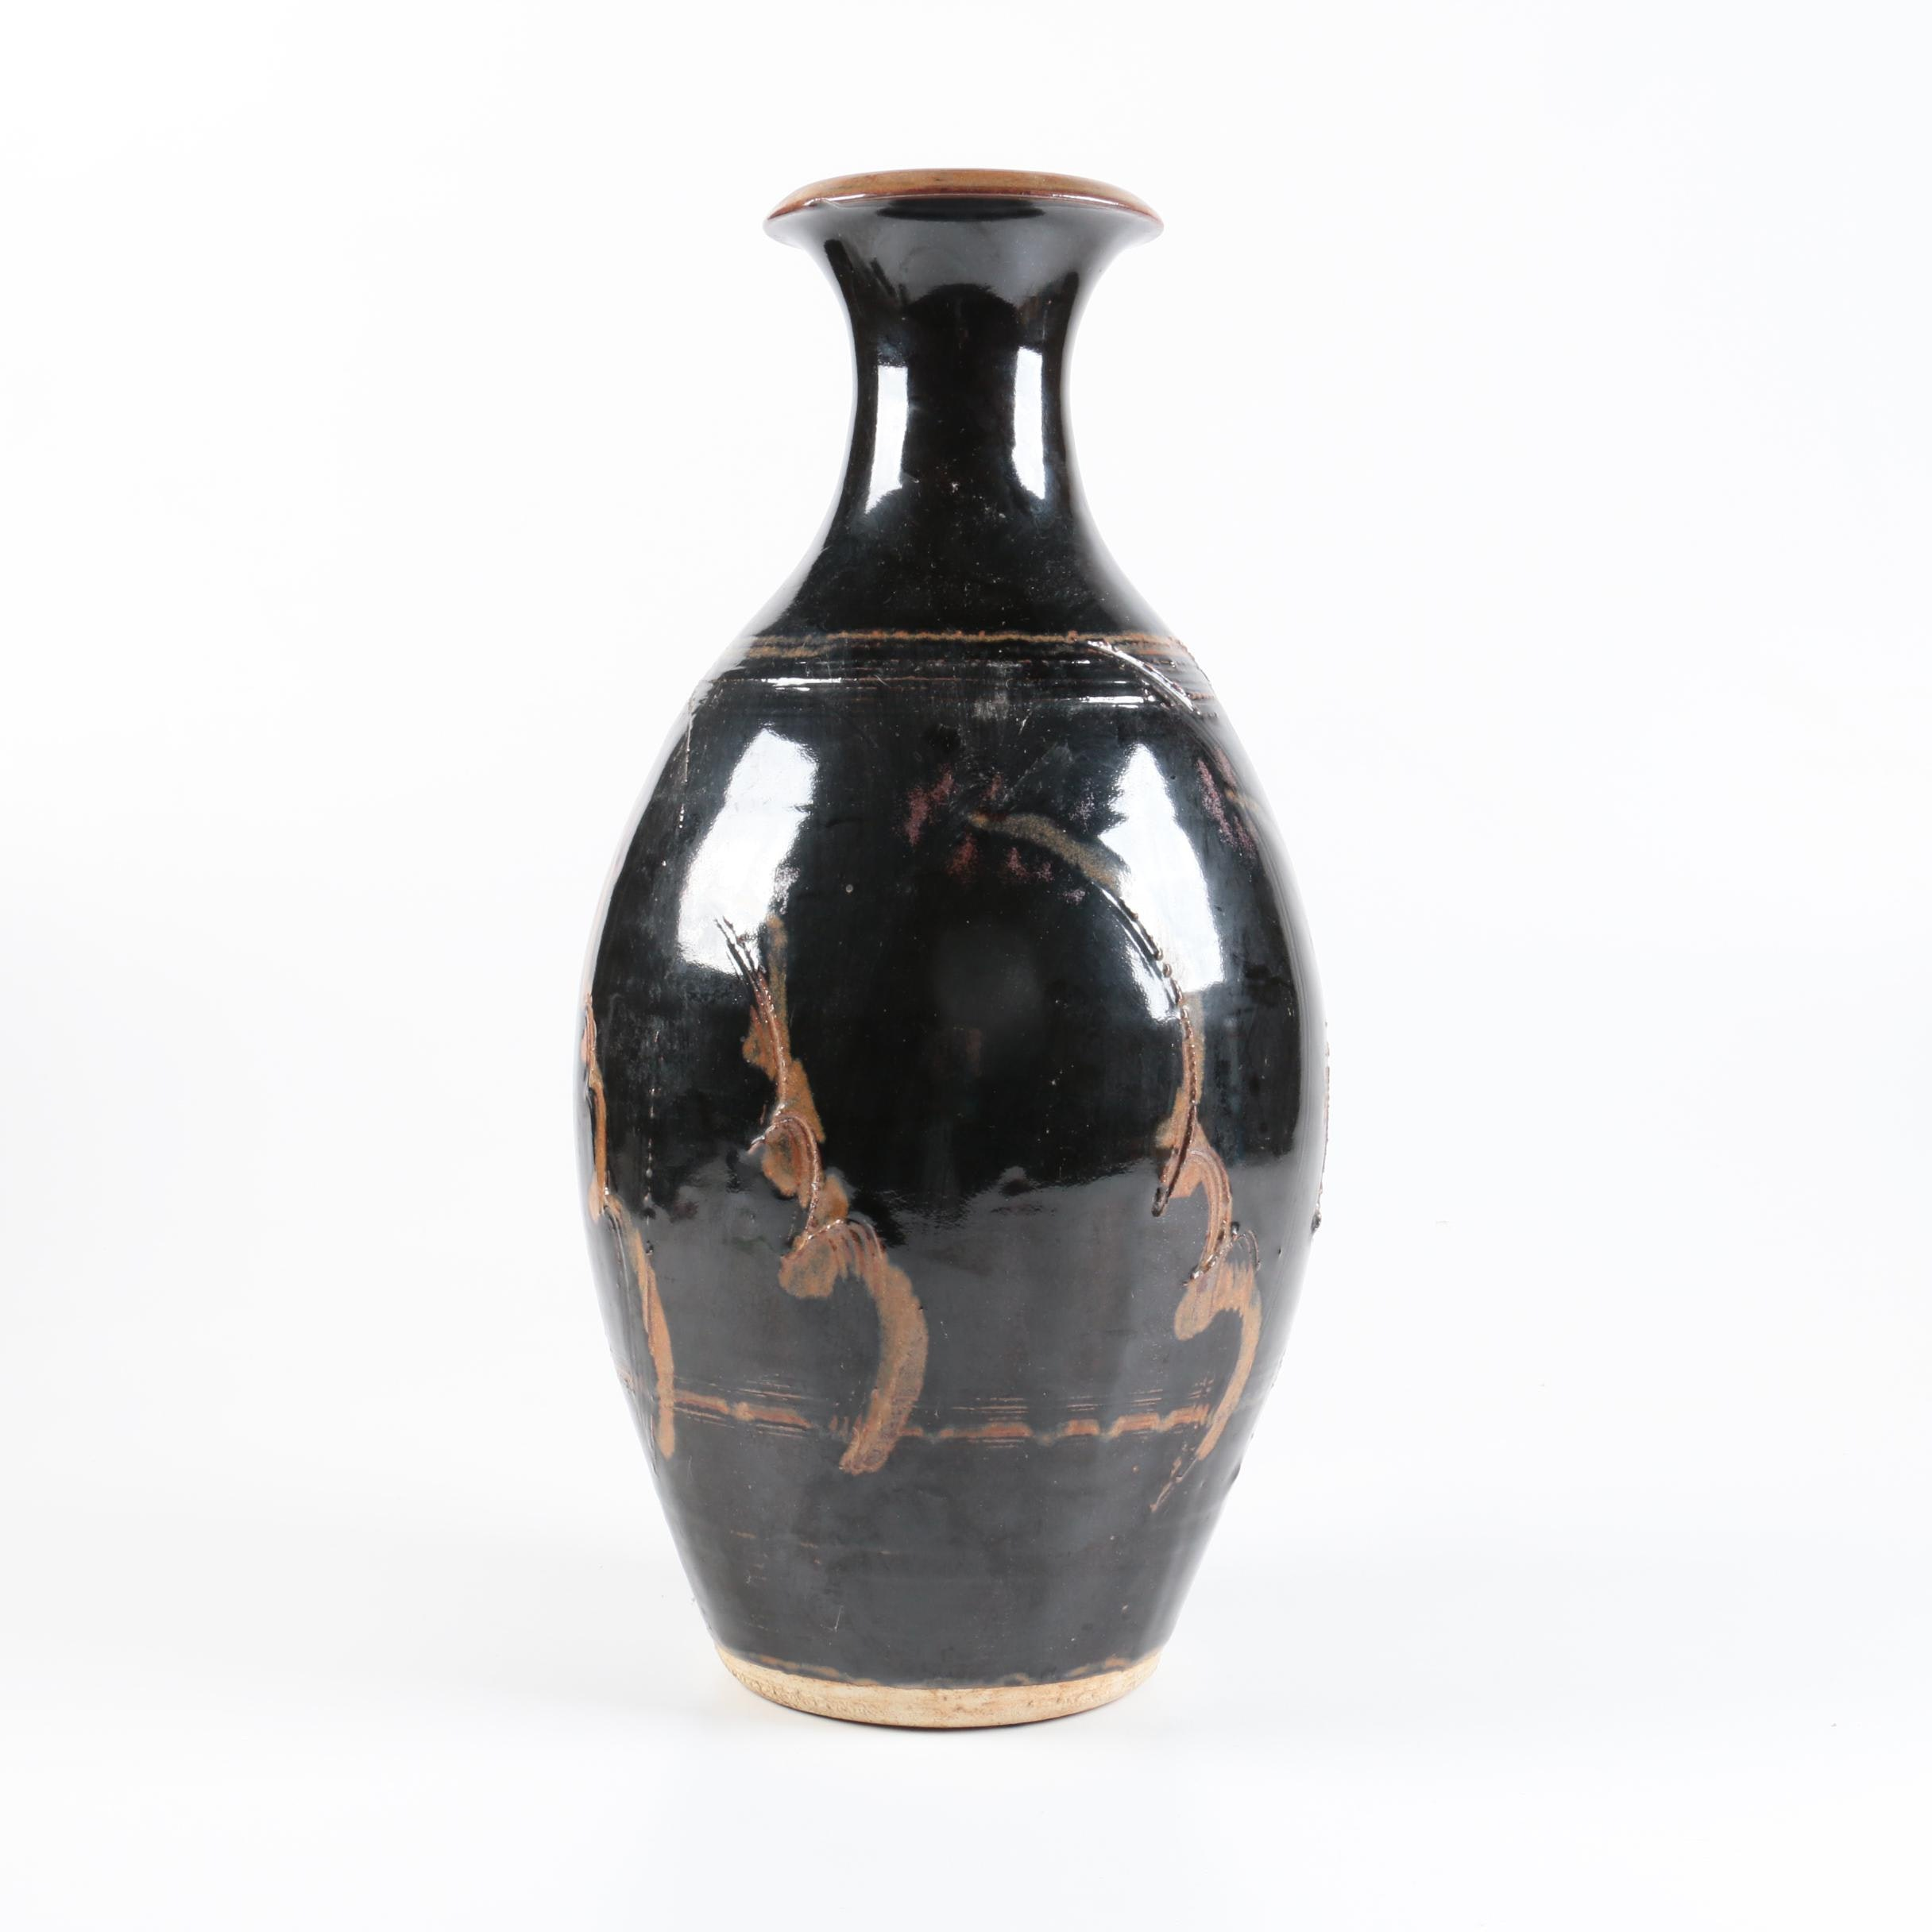 Hand Thrown Stoneware Vase with Tenmoku Glaze